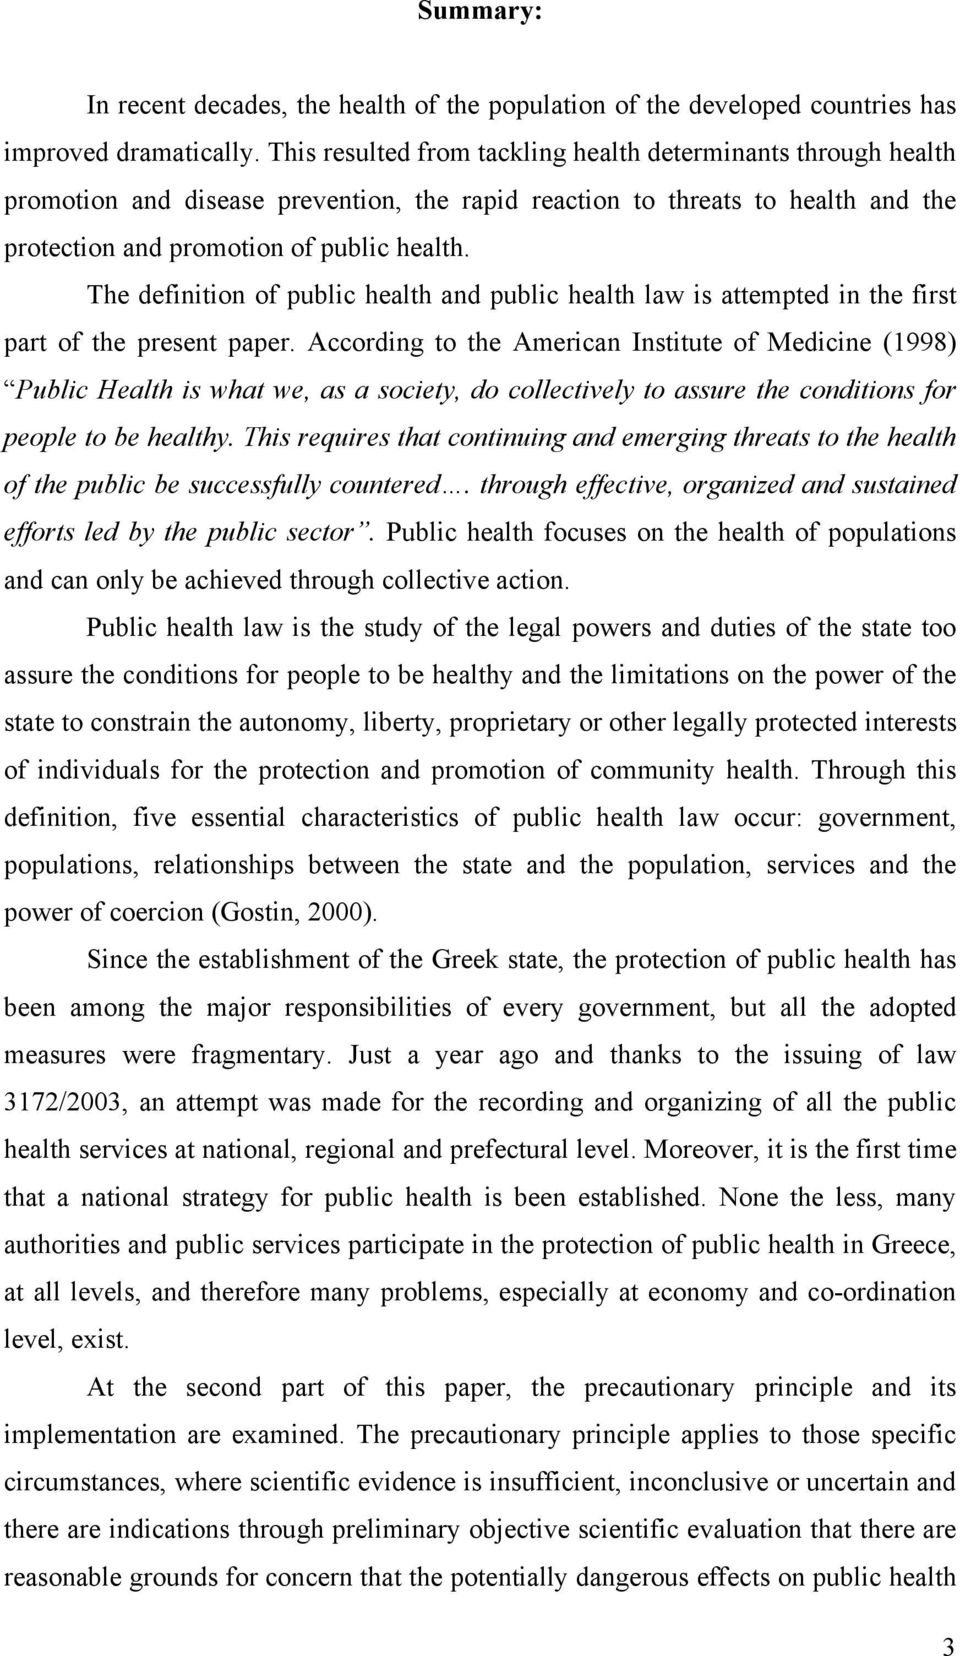 The definition of public health and public health law is attempted in the first part of the present paper.